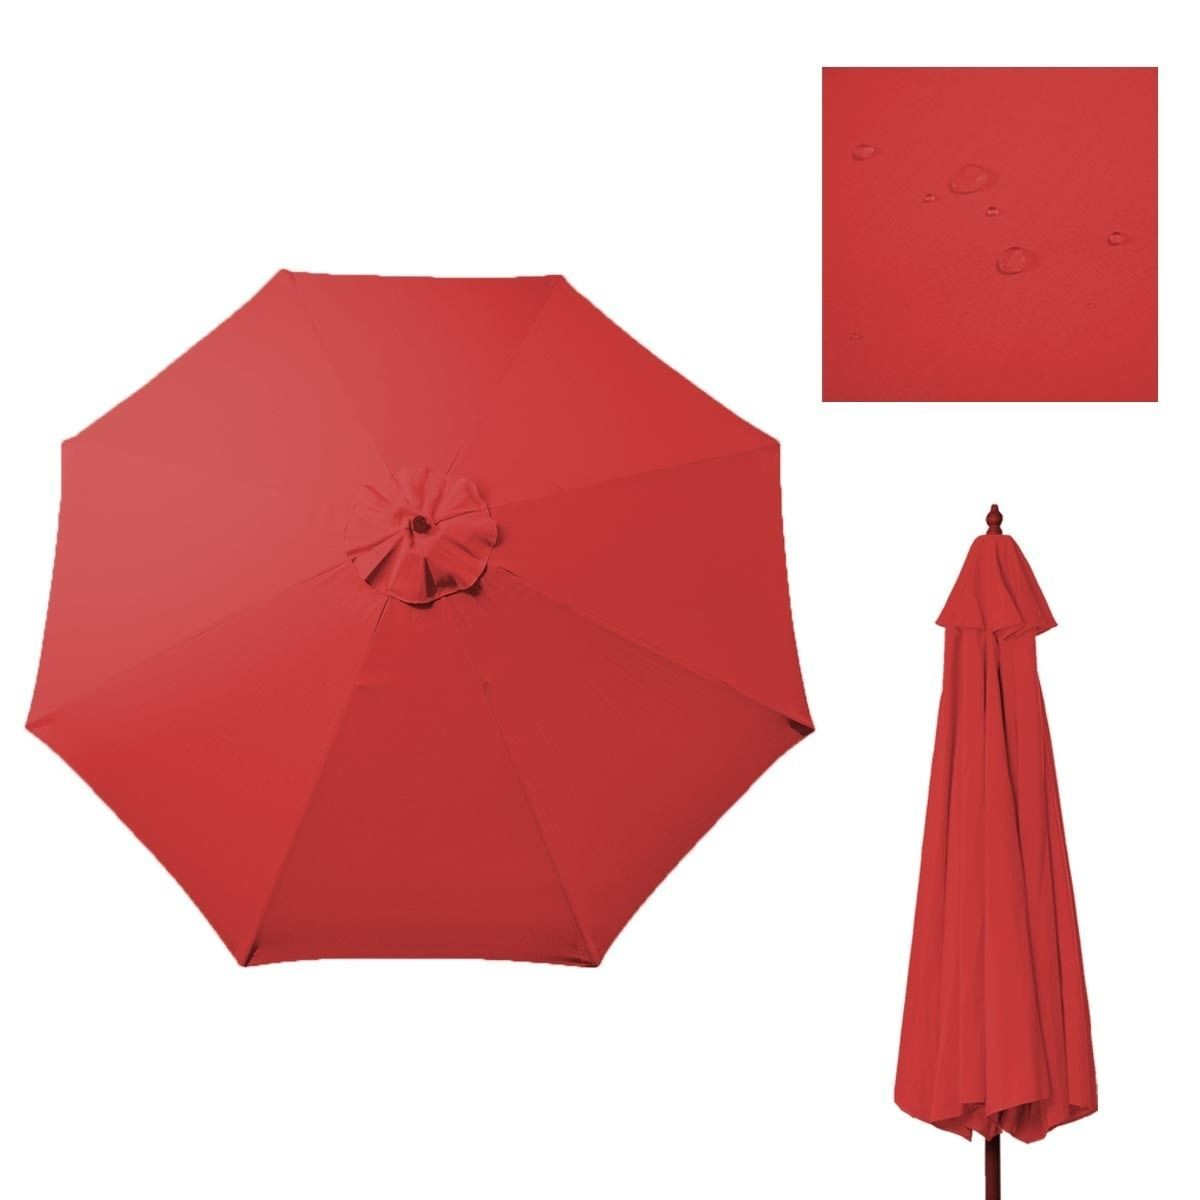 New Replacement Umbrella Canopy for 9FT 8 Ribs Color Red (CANOPY ONLY)  sc 1 st  Walmart & New Replacement Umbrella Canopy for 9FT 8 Ribs Color: Red (CANOPY ...